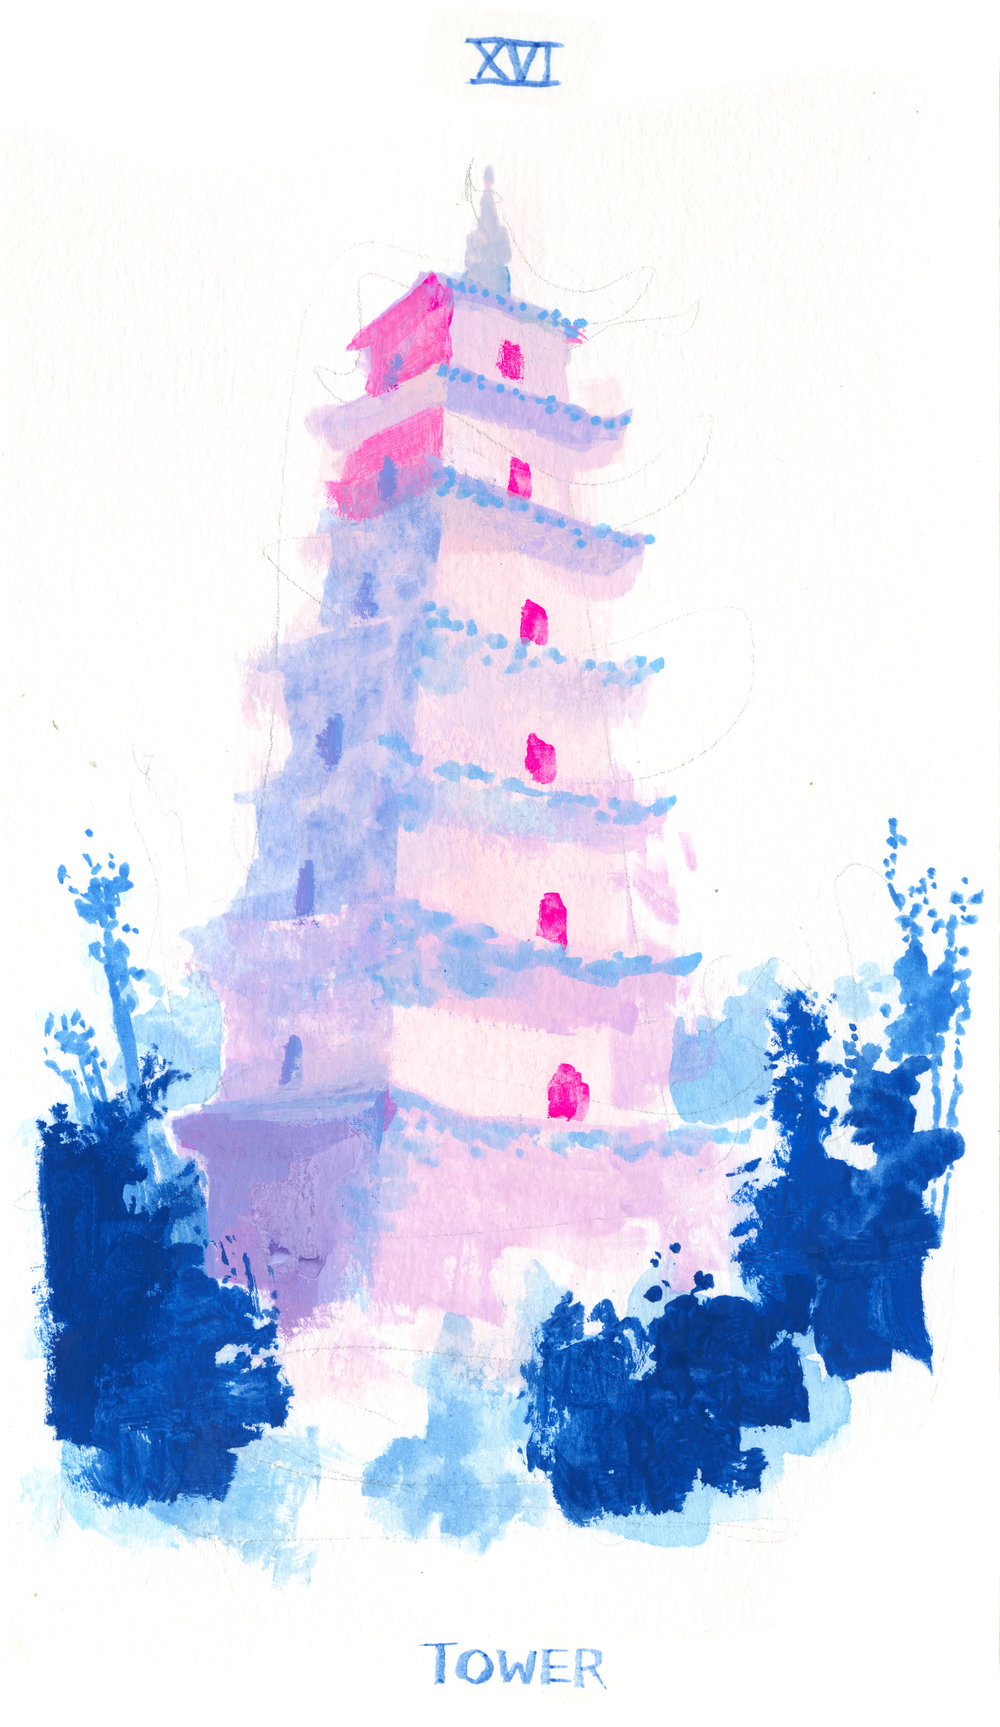 16-tower copy.jpg